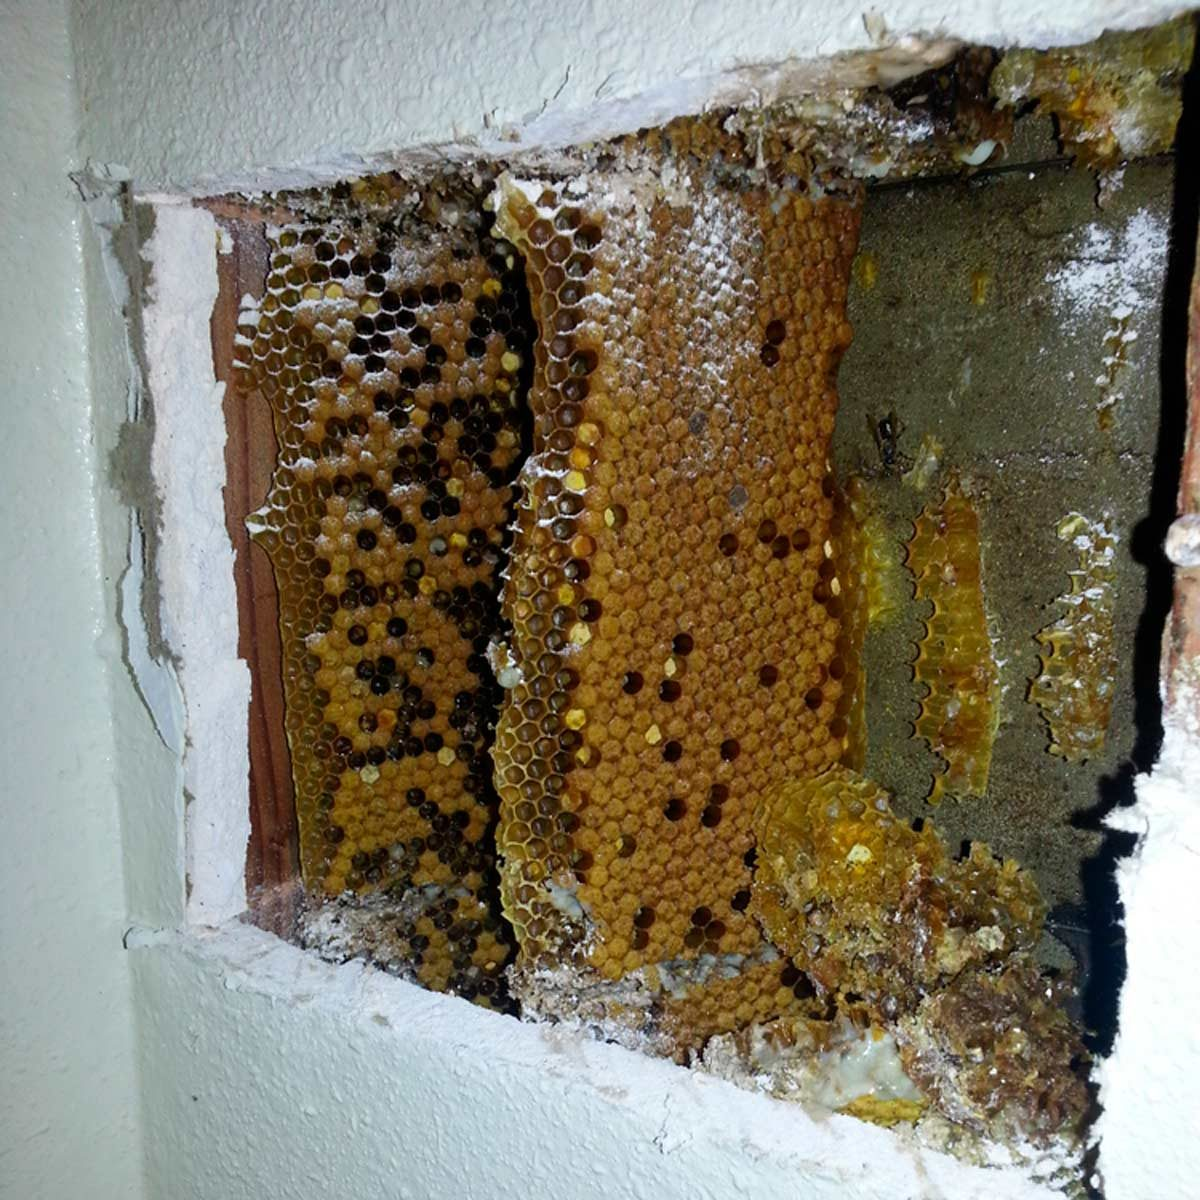 Why Do Some Old Homes Have a Beehive Built Into a Wall